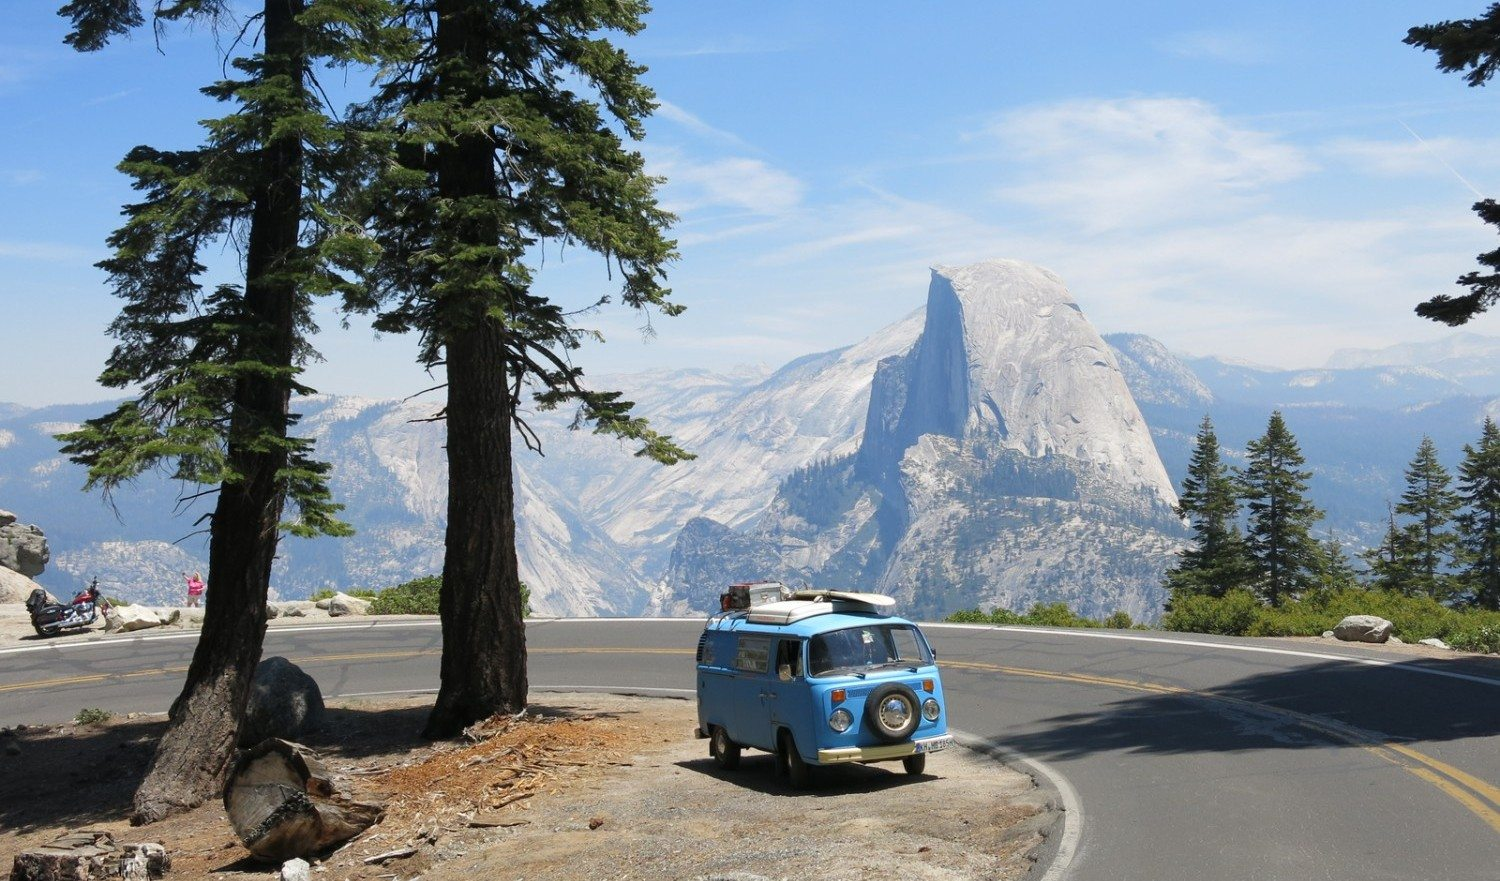 Yosemite National Park, Ca, USA, June, 19th, 2015 A 41 year old VW-BUS in front of Half Dome in Yosemite National Park, California